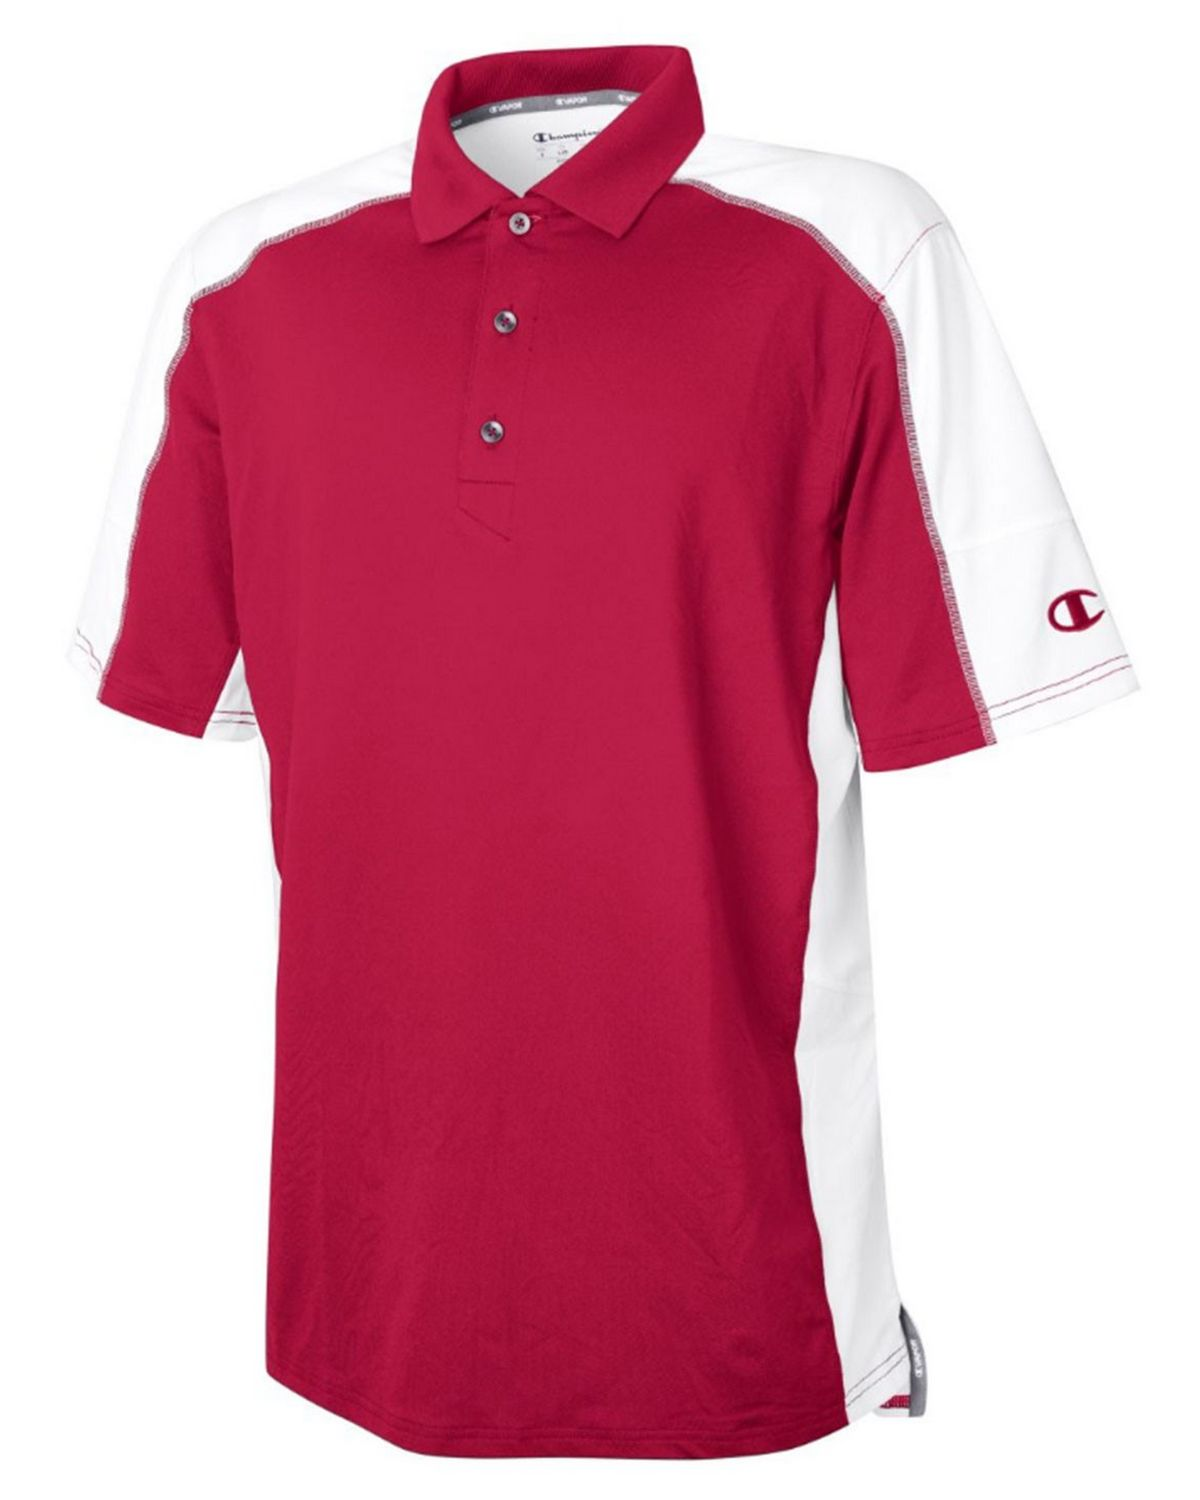 Champion H001 Mens Vapor Polo Shirt - Scarlet/White - XL H001